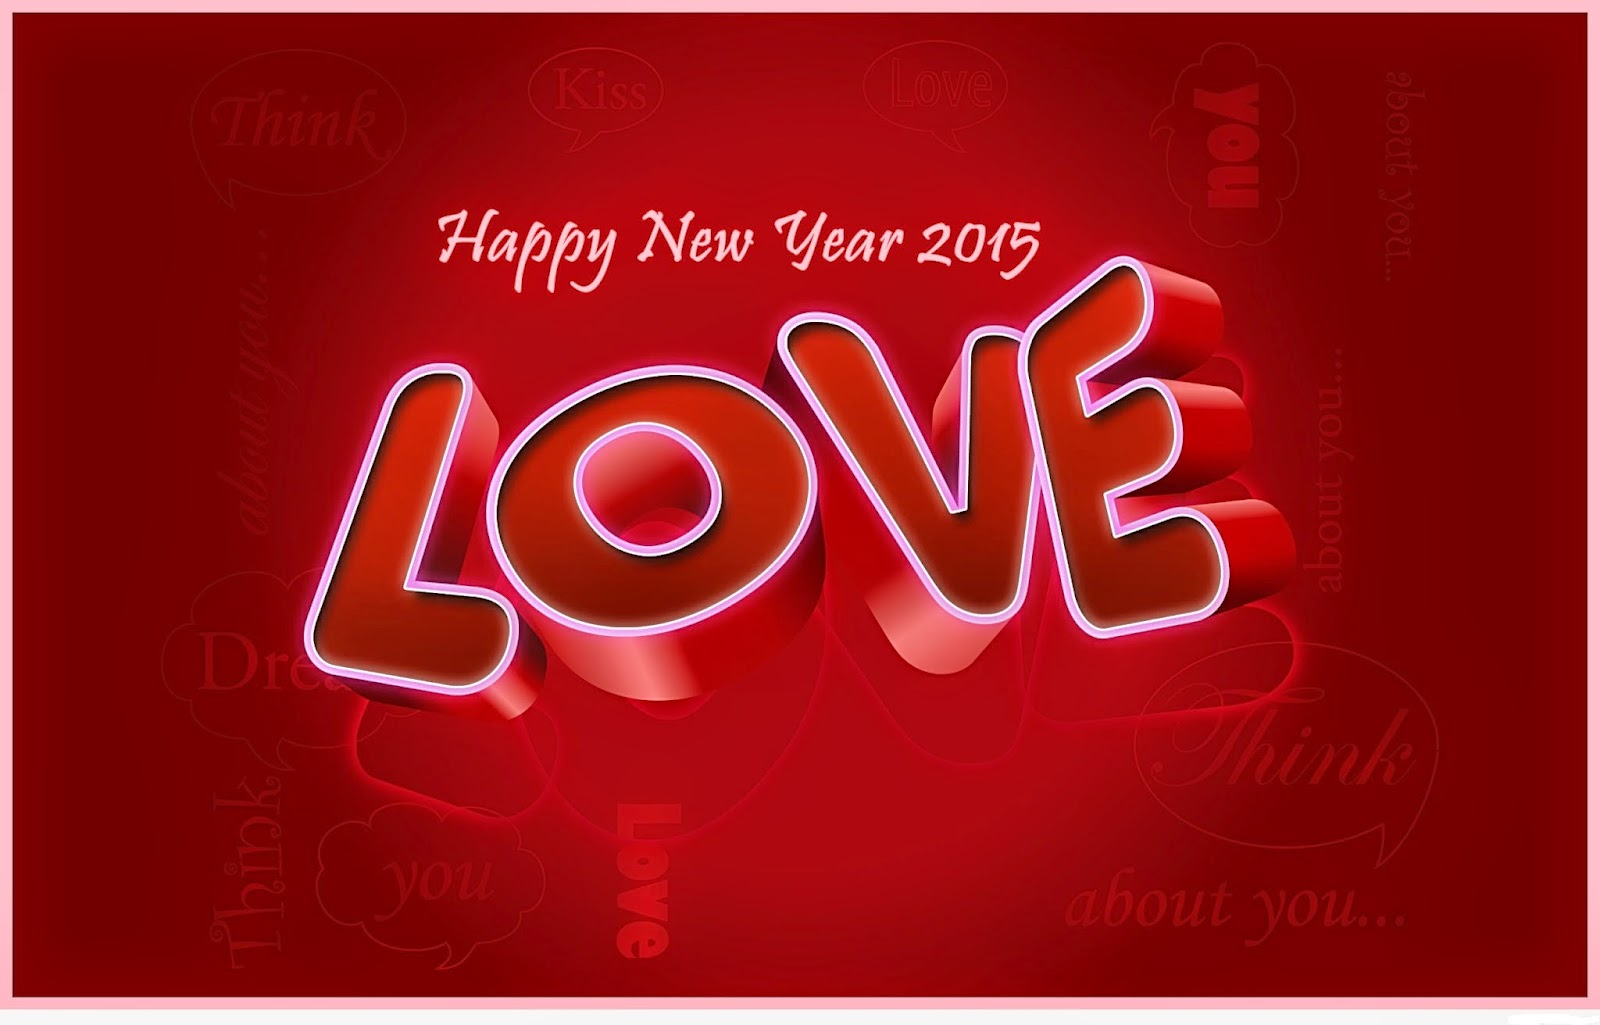 Happy New Year 2015 Love Cards